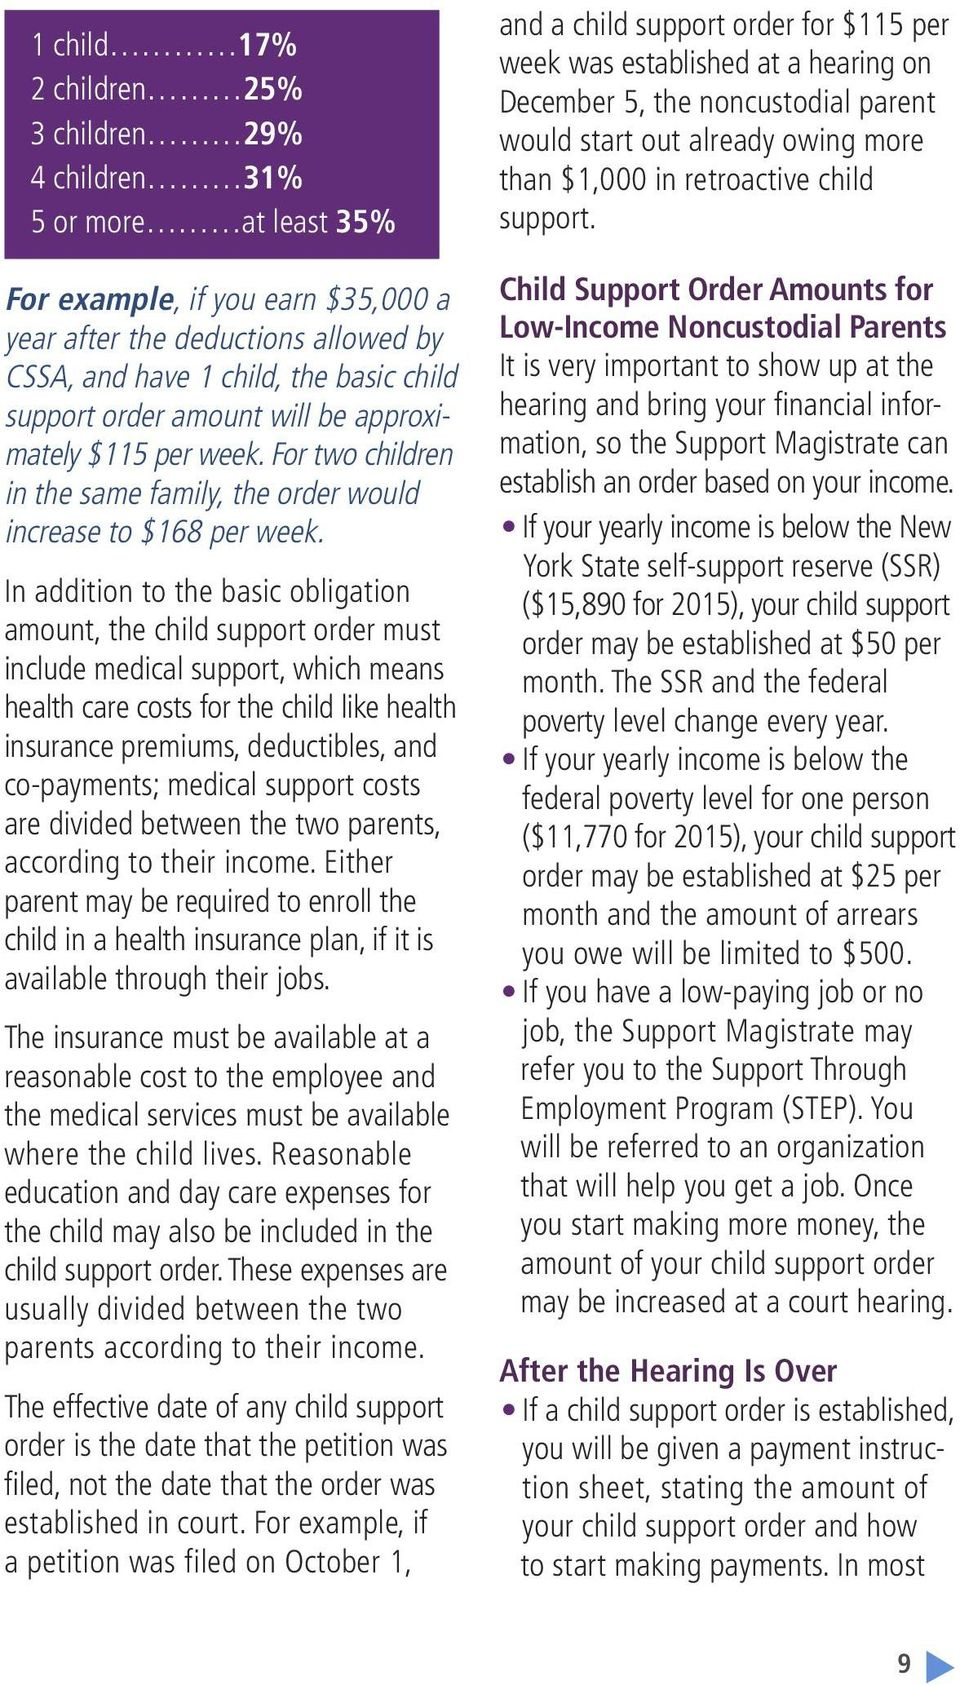 In addition to the basic obligation amount, the child support order must include medical support, which means health care costs for the child like health insurance premiums, deductibles, and